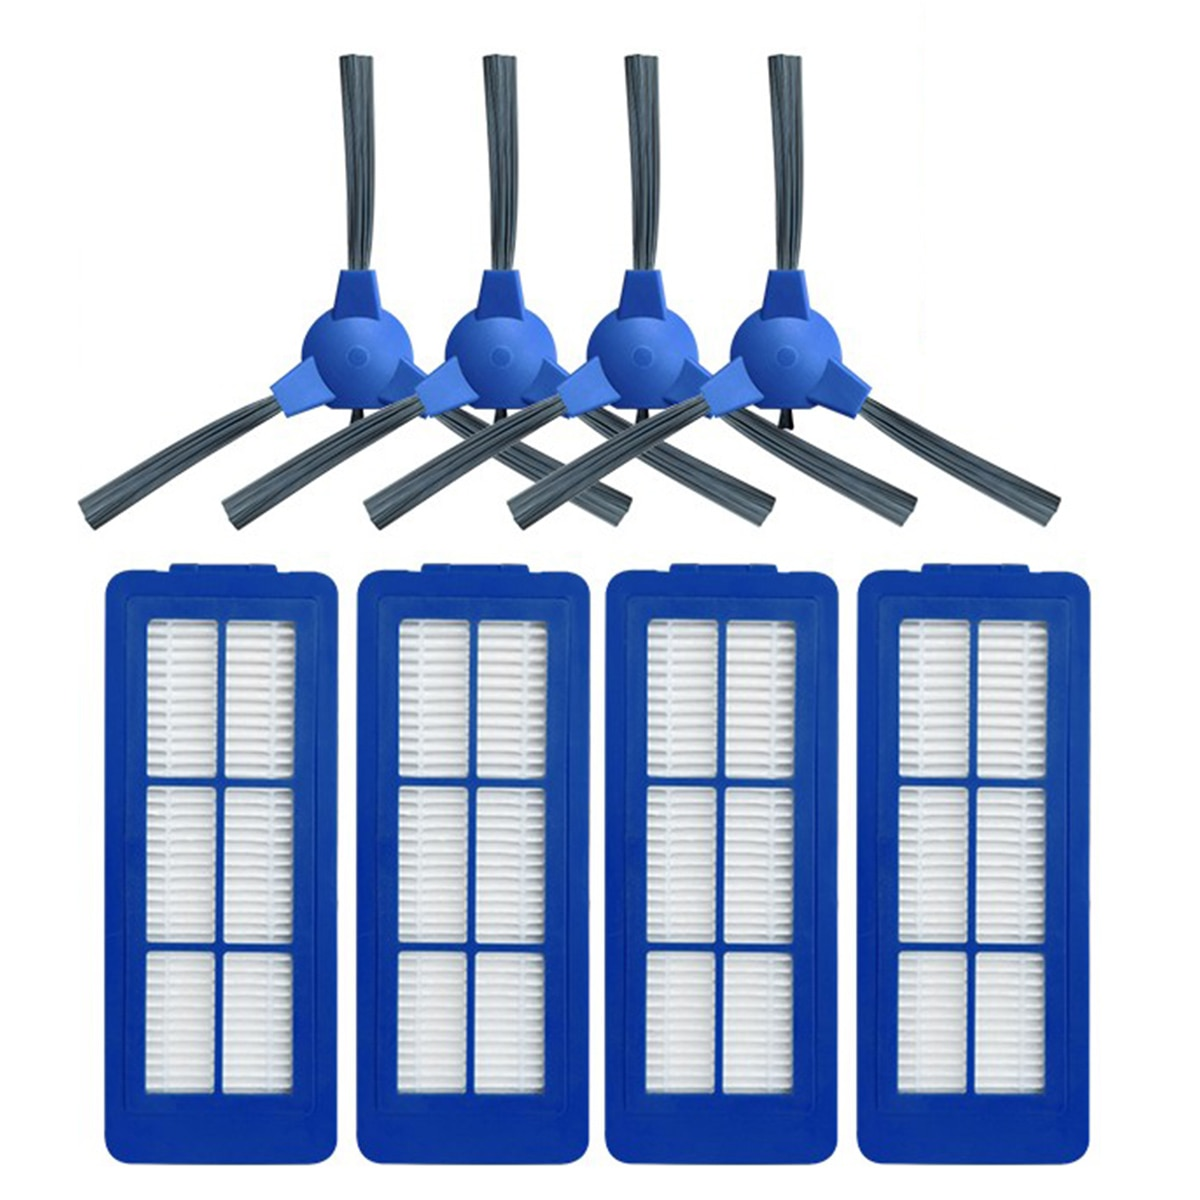 4 Pcs Filter Side Brush Kit Set Mixed Parts Replacement Accessories For Eufy Robovac G10 hybrid Vacuum Cleaner